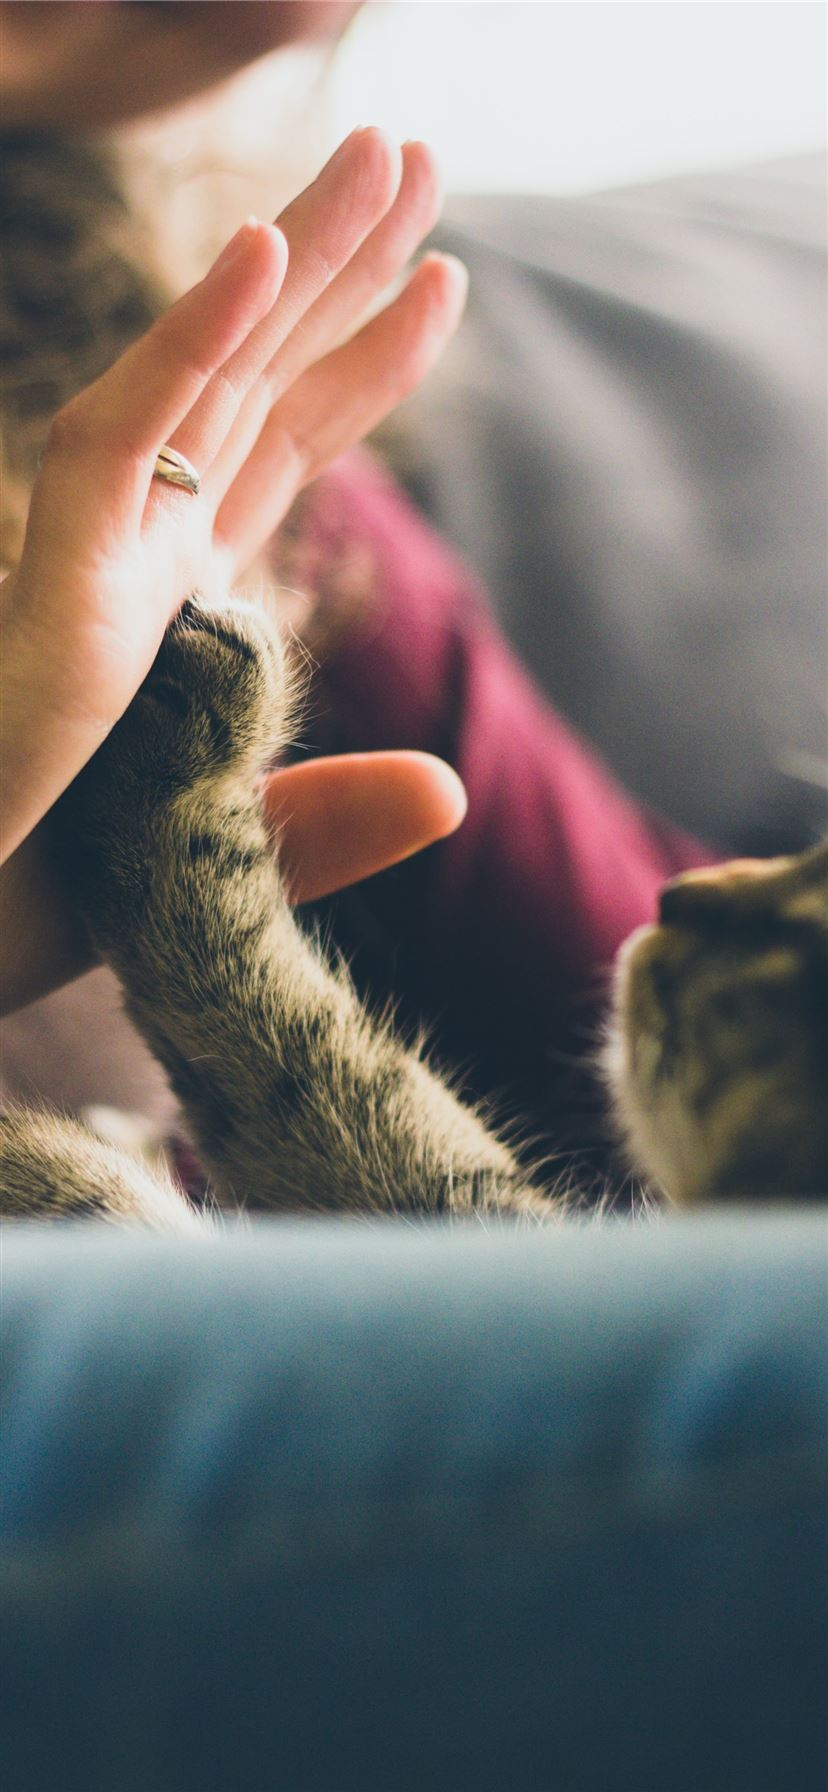 tabby cat touching person's palm iPhone 11 wallpaper